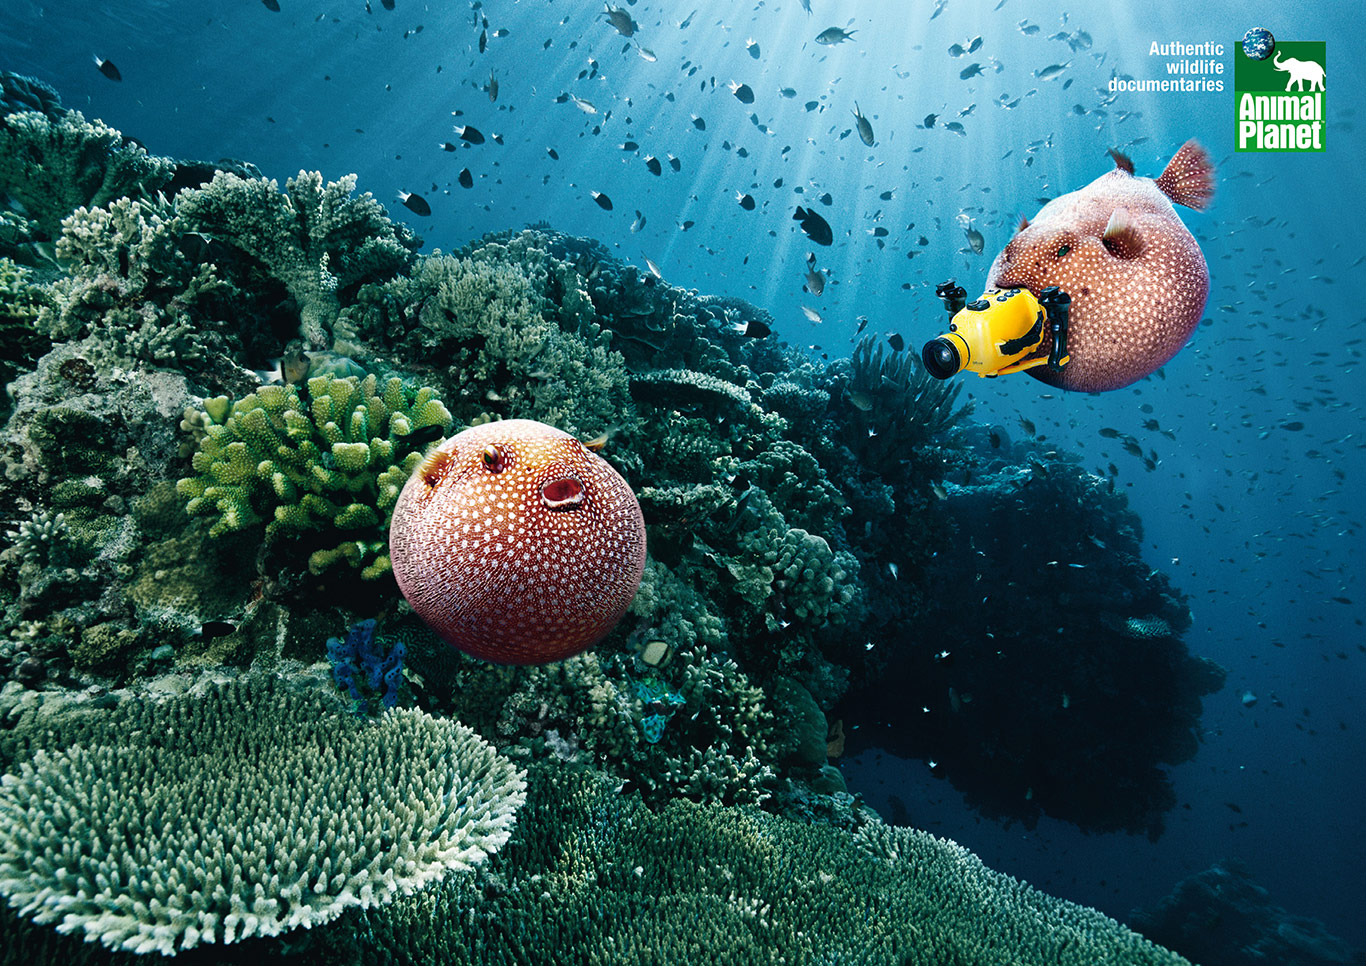 3-Animal-Planet-Cameramanimals-Blowfish